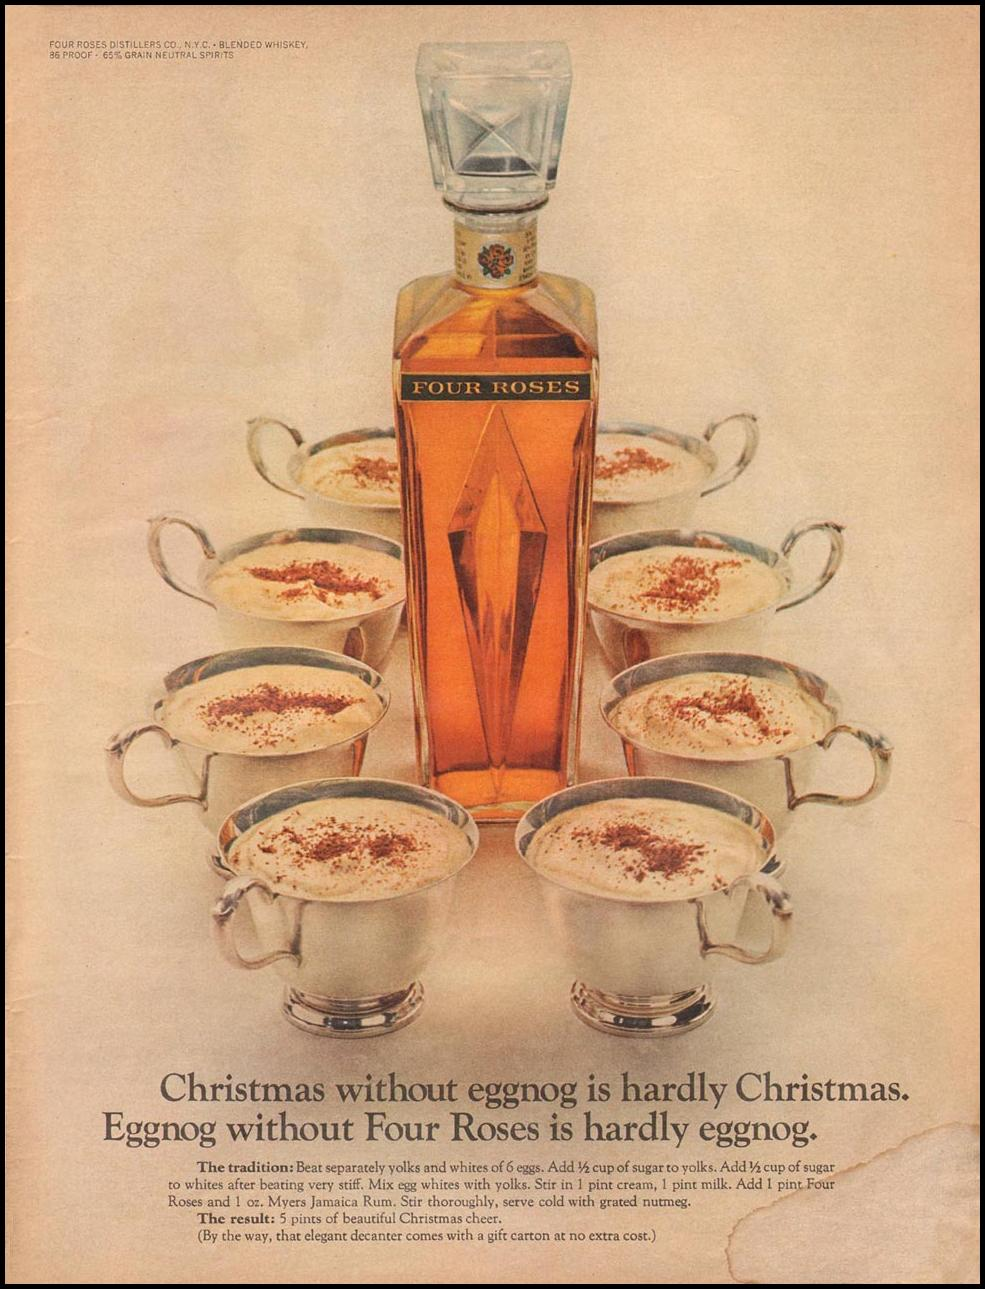 FOUR ROSES WHISKEY LIFE 12/22/1967 p. 6